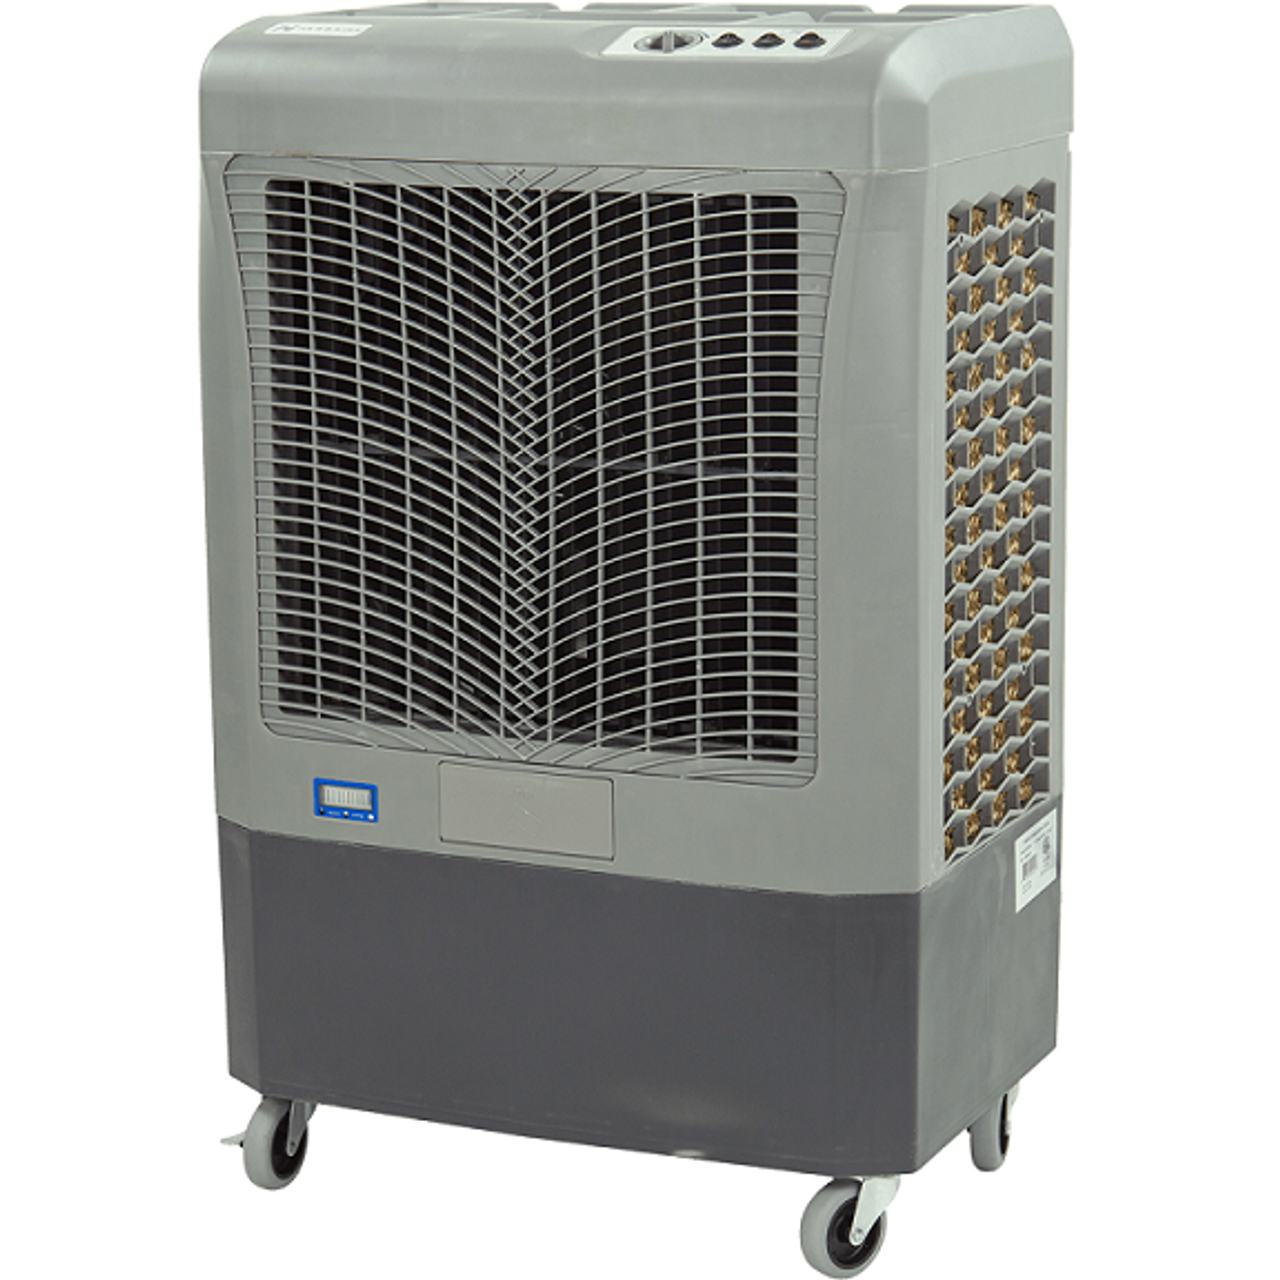 Hessaire Mobile Evaporative Coolers